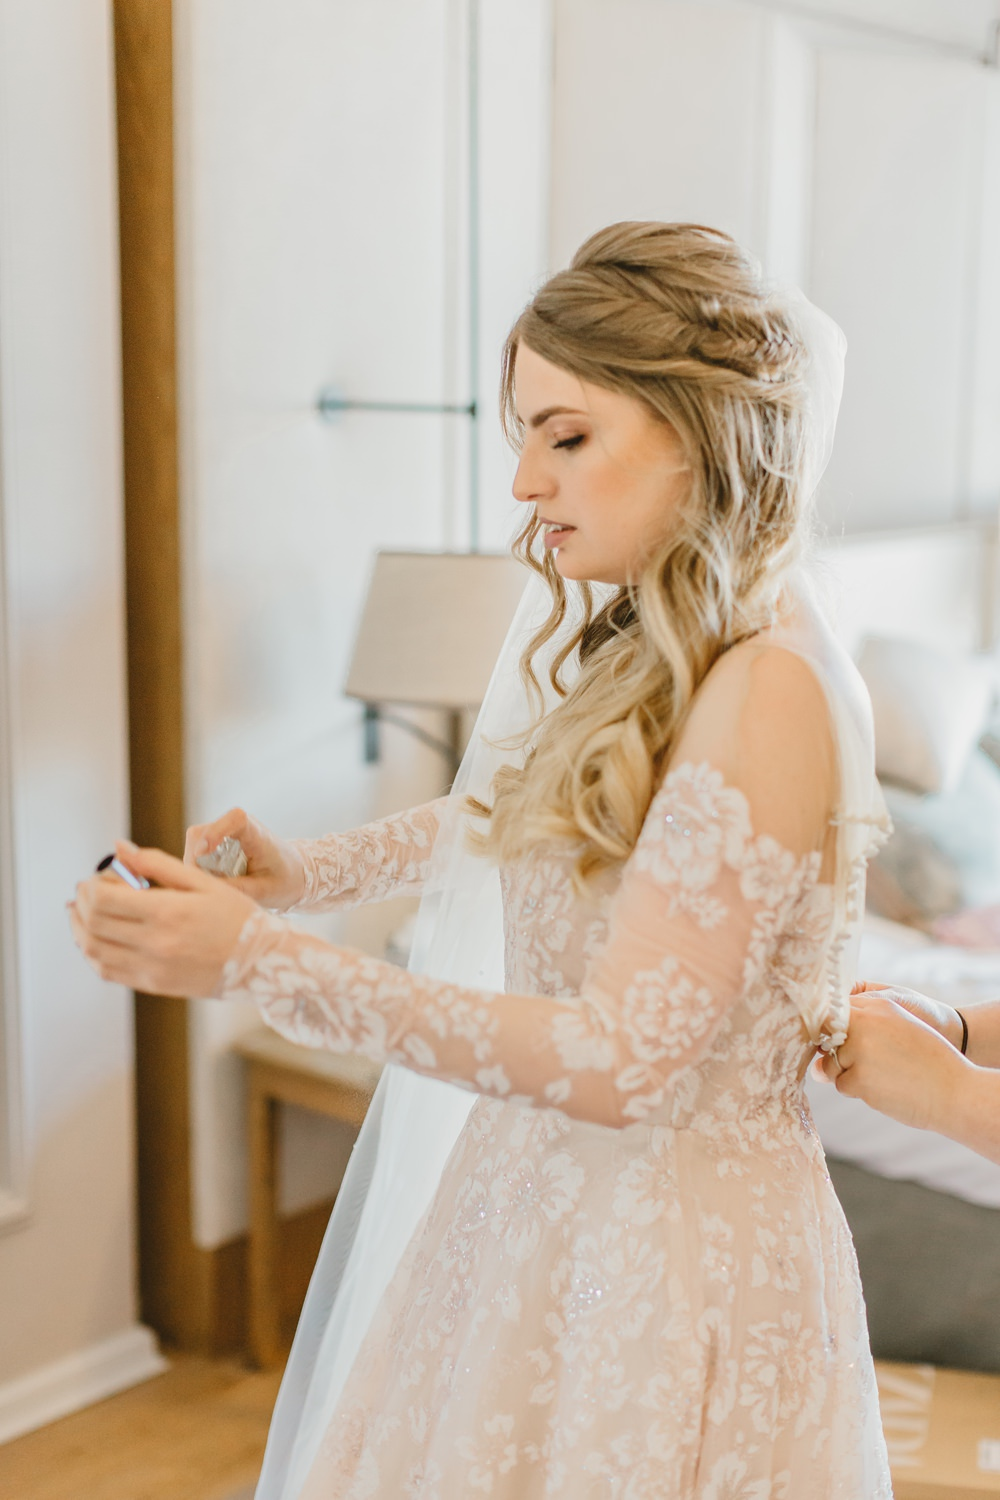 Dress Gown Bride Brida Long Sleeves Hayley Paige Veil York Minster Wedding Amy Lou Photography